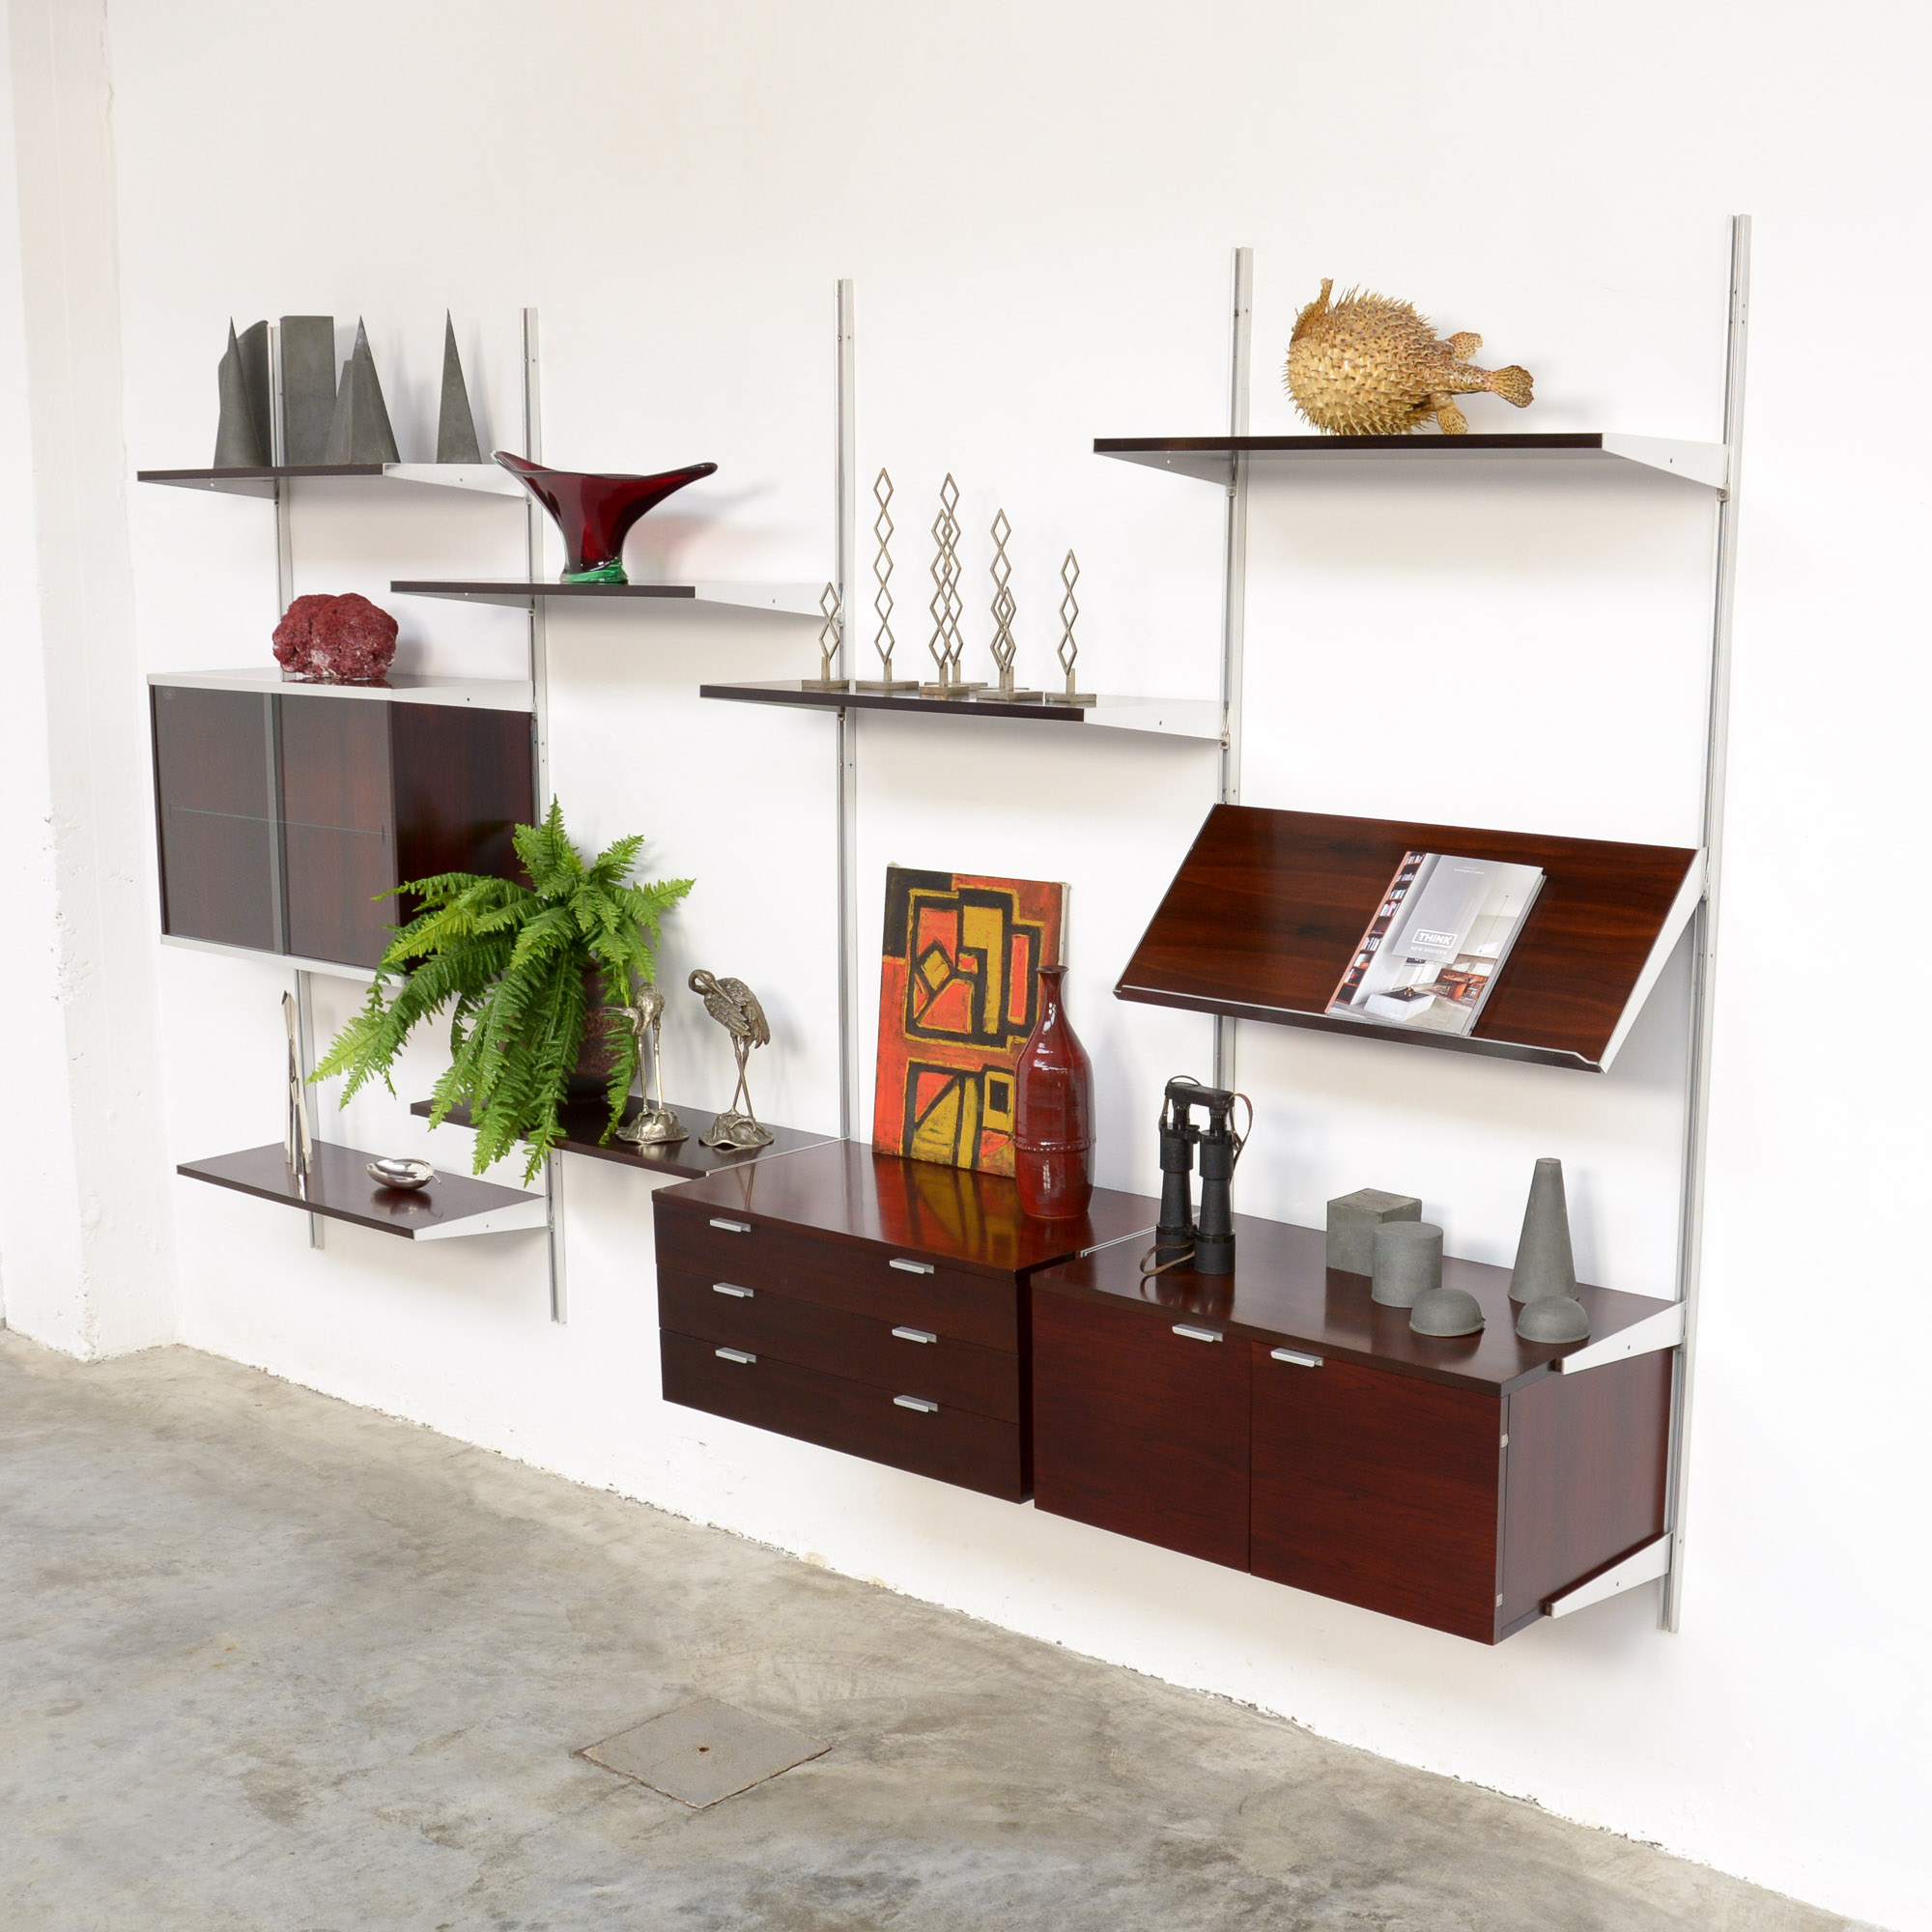 Mobilier De France Impressive Wall Unit By George Nelson For Herman Miller Mobilier